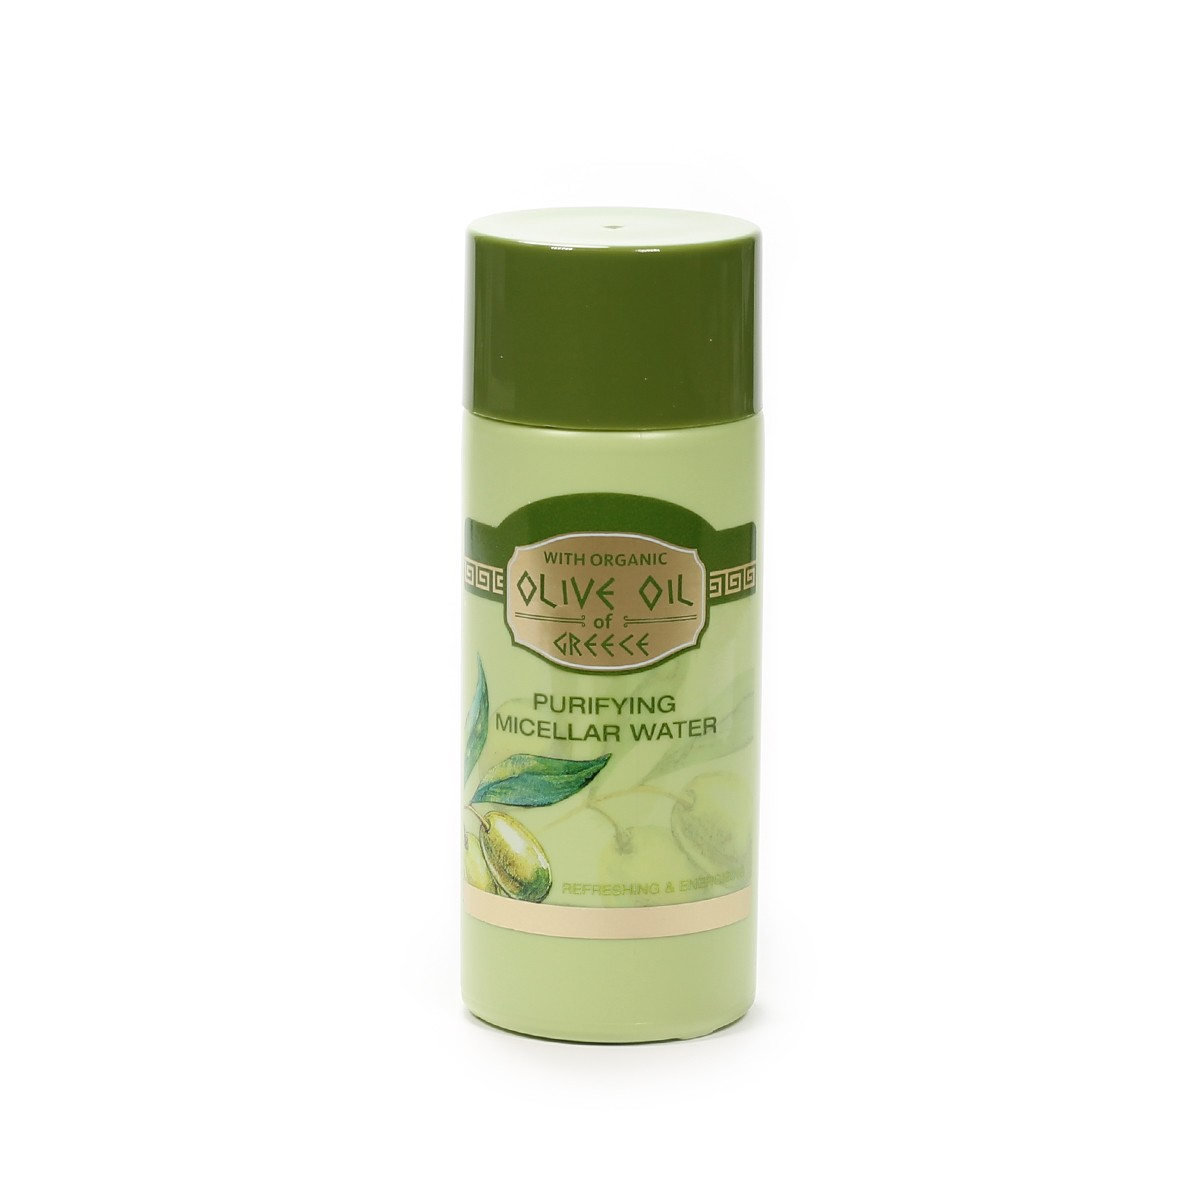 Purifying micellar water for face Olive Oil of Greece Biofresh